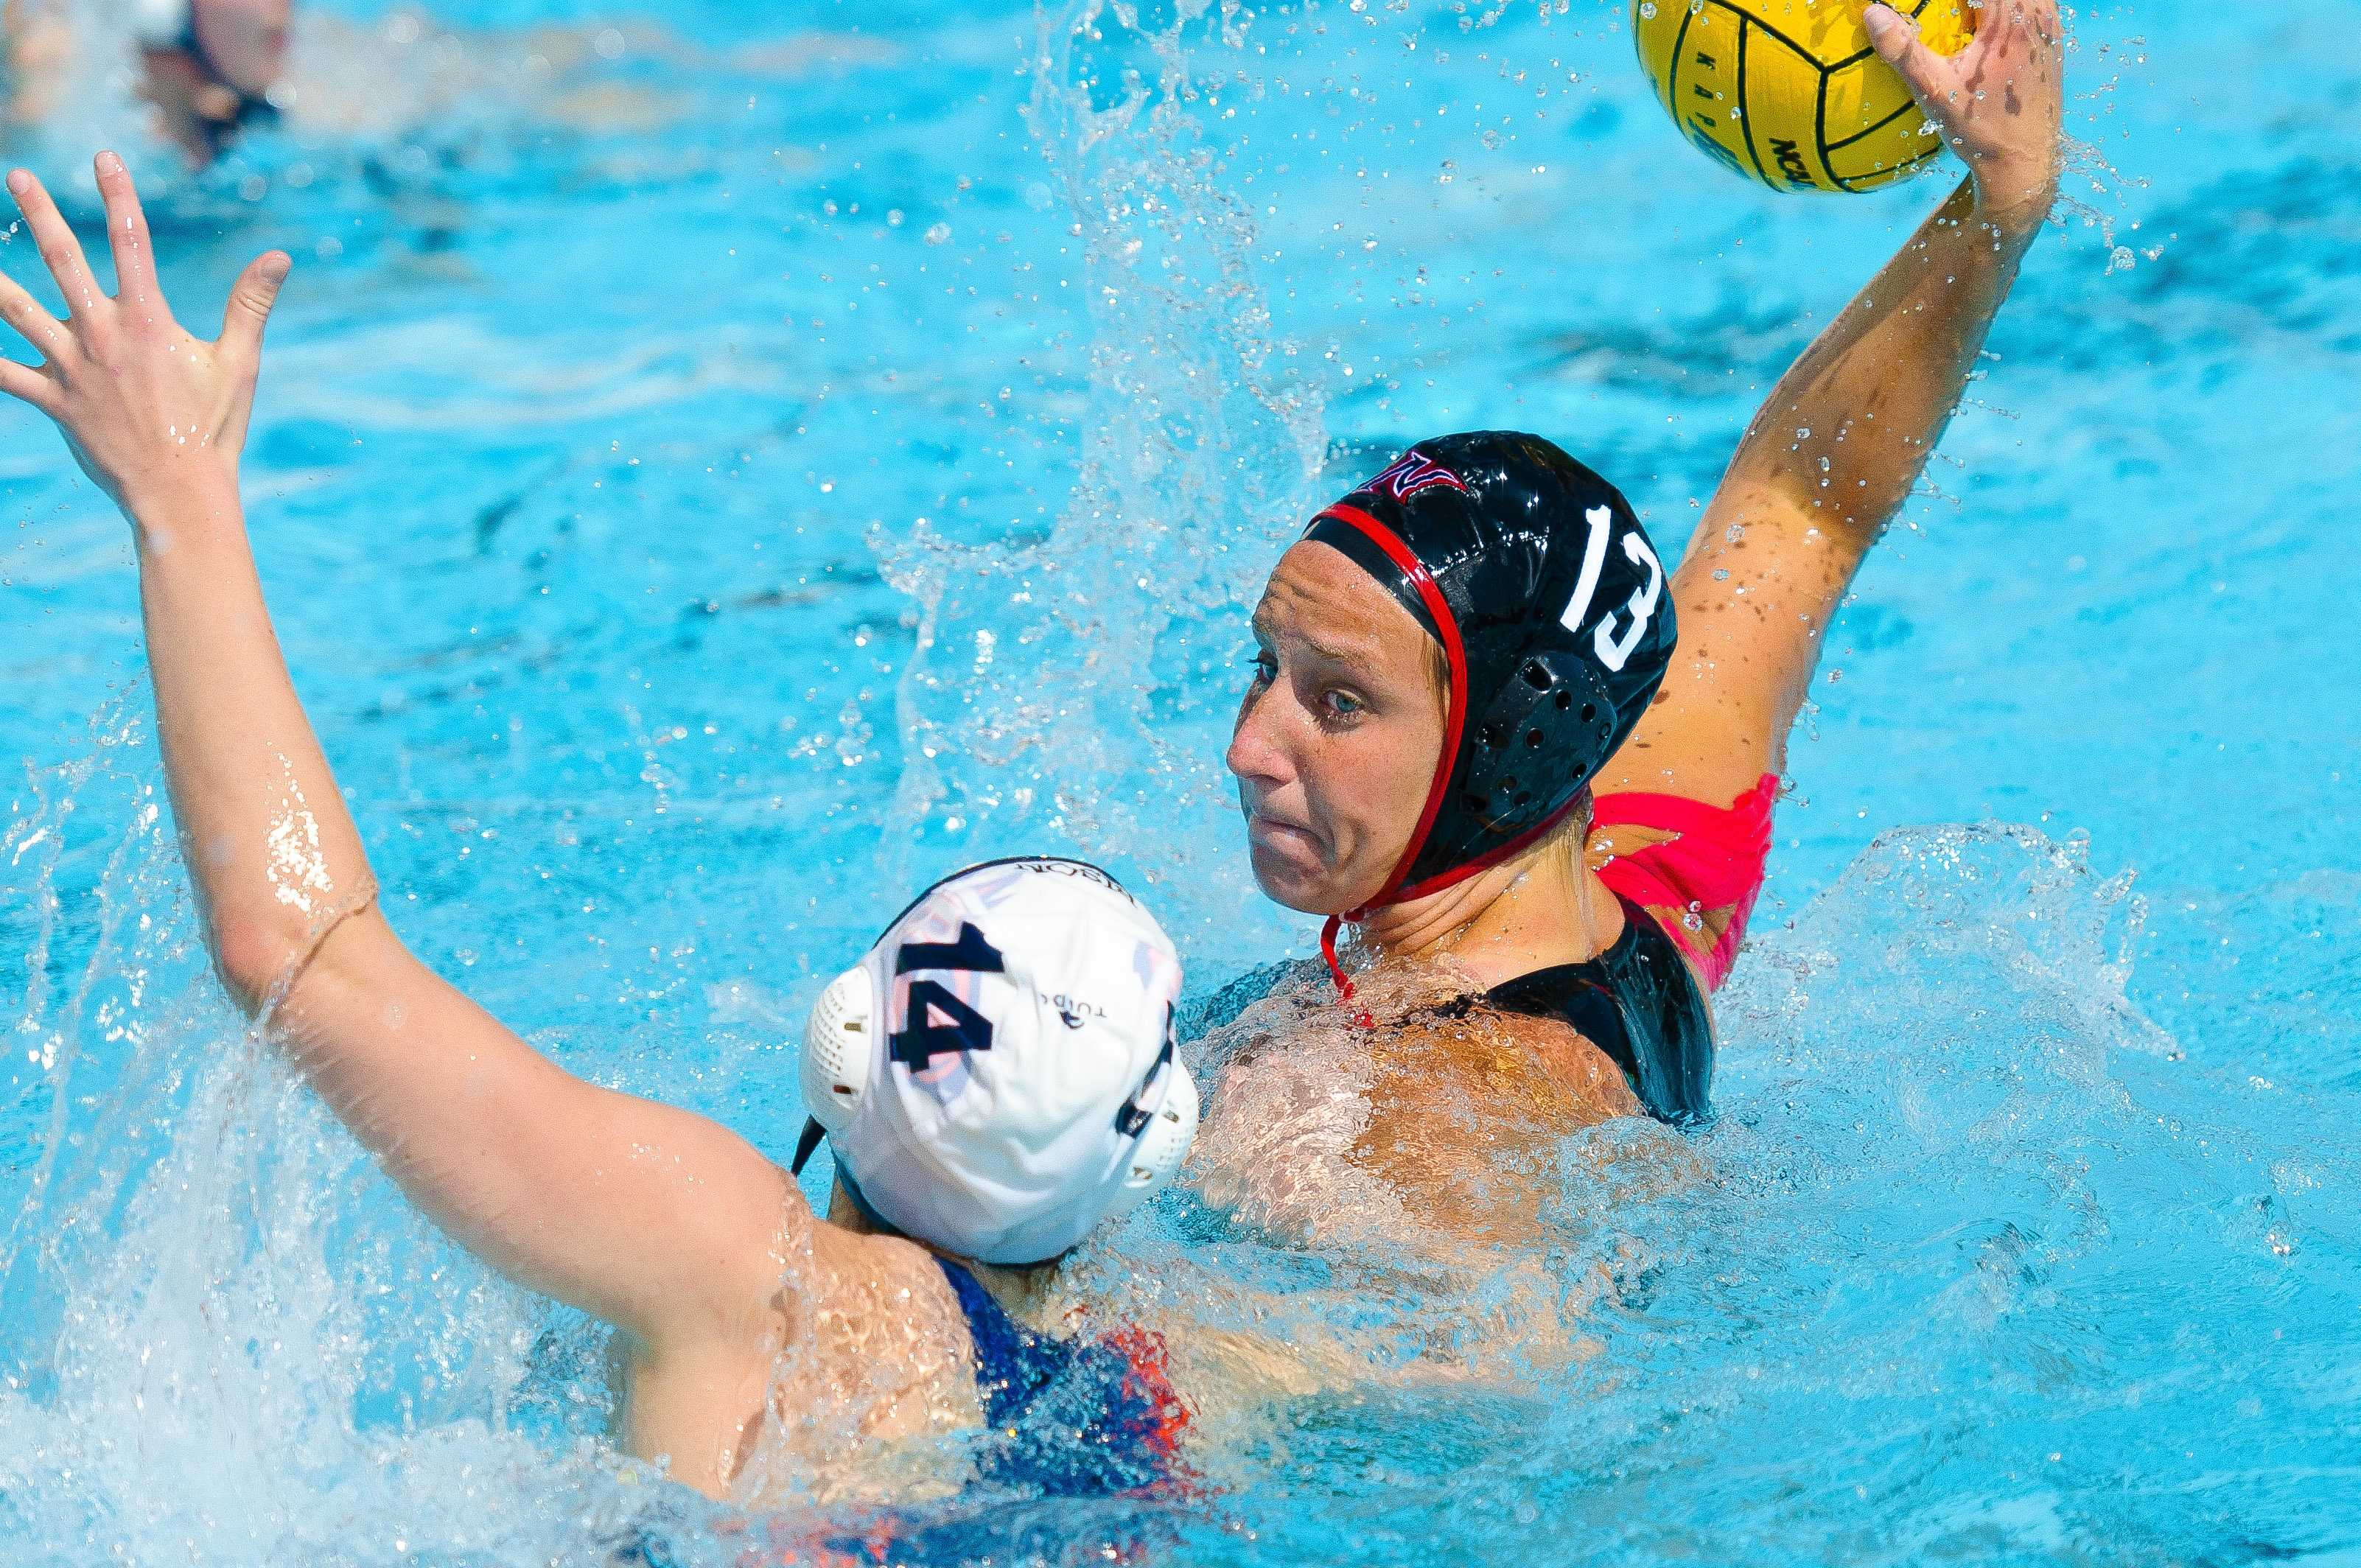 CSUN attacker Melissa Doll goes for a goal in a game. Doll put the Matadors on the scoreboard first as they took third place in the Big West Conference Tournament in a 6-5 victory over UC Santa Barbara Sunday afternoon. Courtesy of CSUN Athletics.